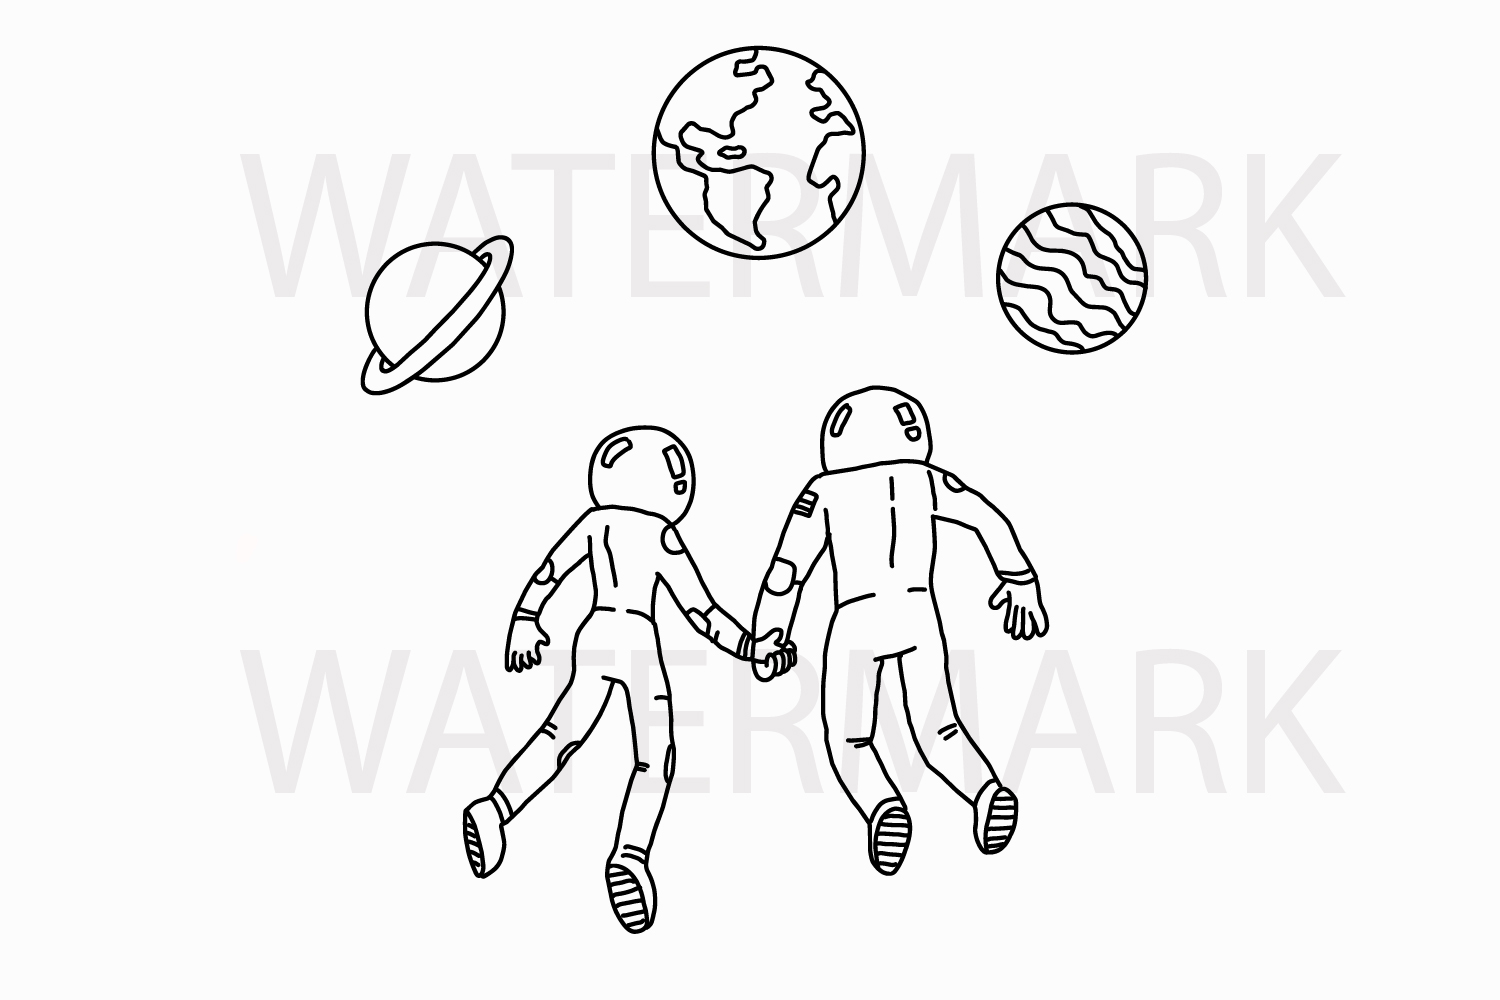 Romantic Astronaut Couple in the space - SVG/JPG/PNG Hand Drawing example image 1